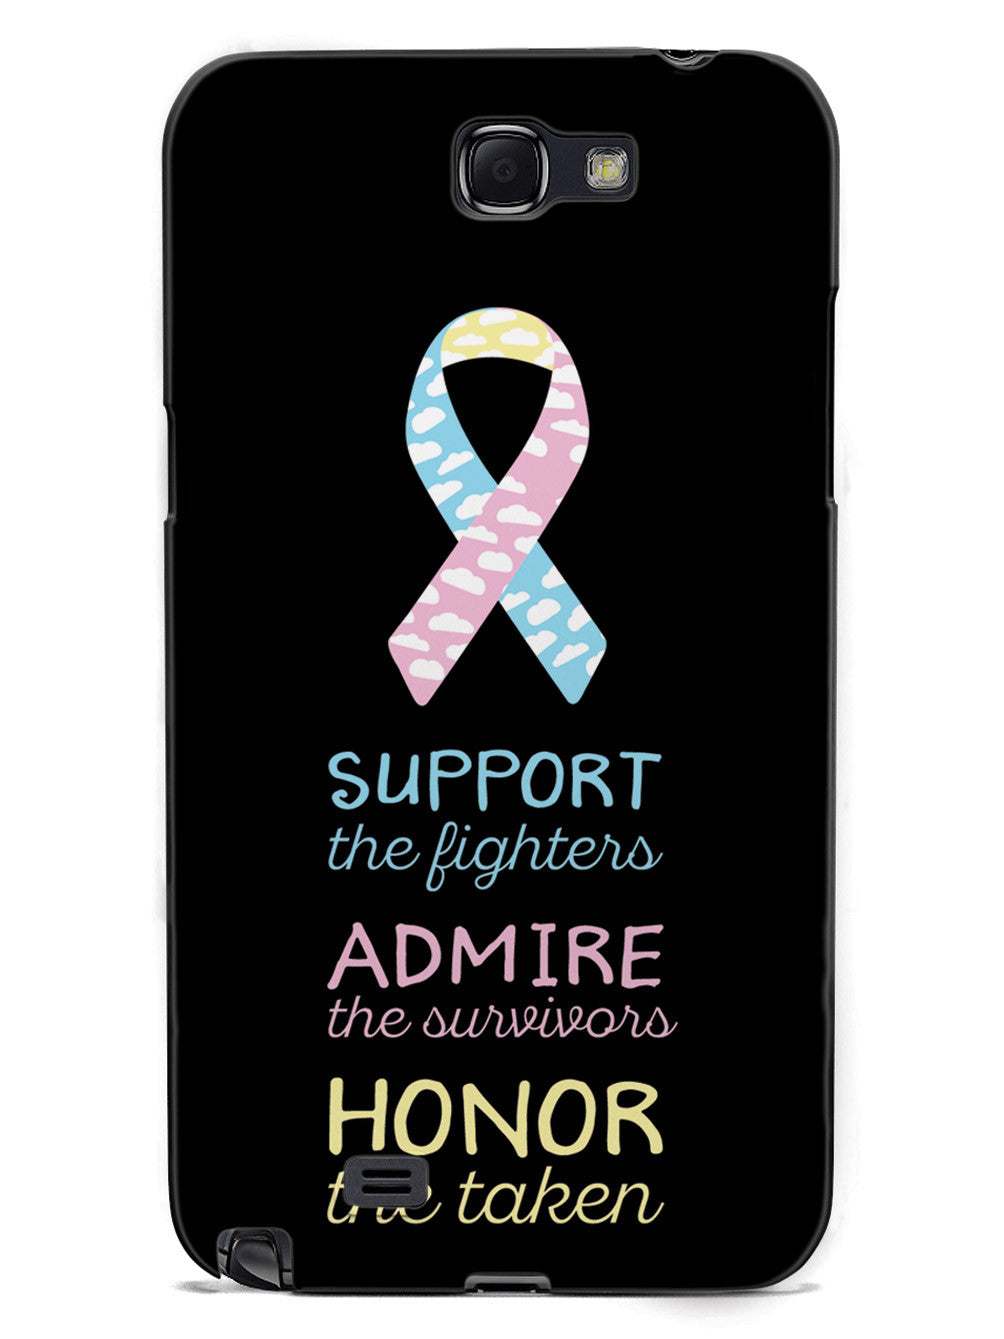 Support, Admire, Honor - CDH Awareness Case